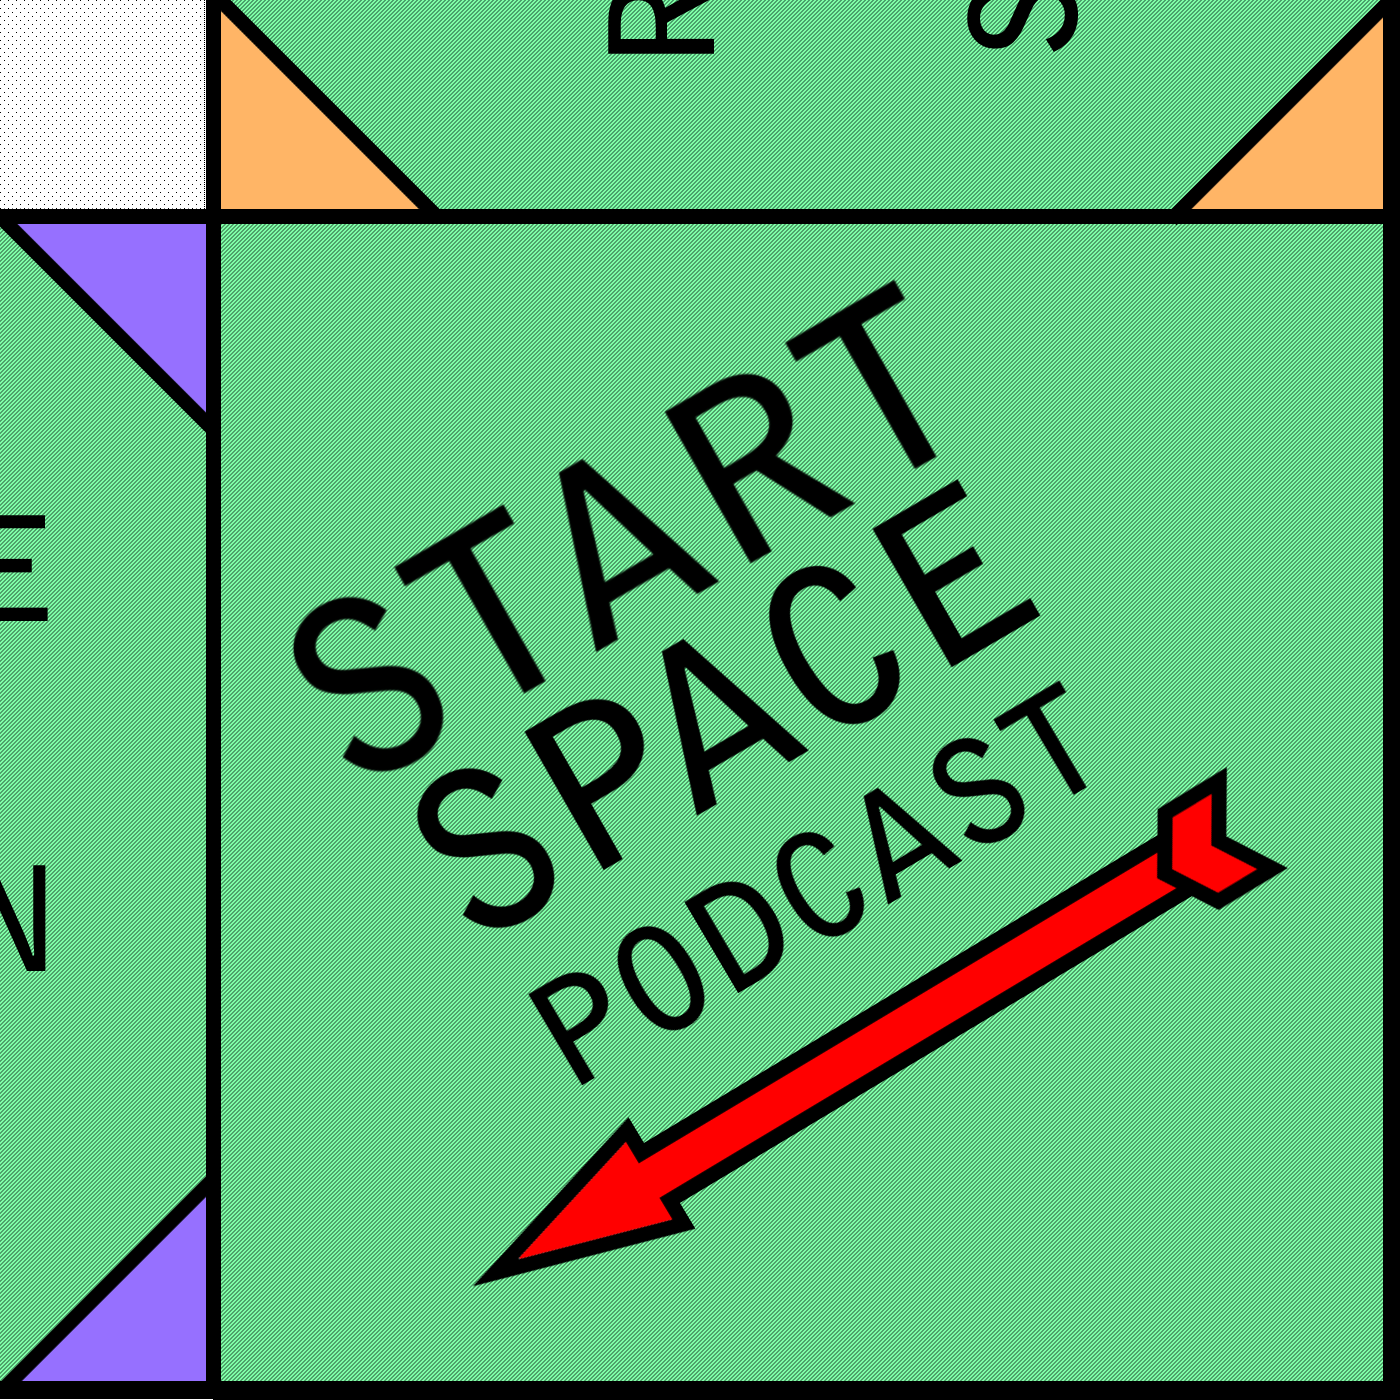 Episode 71 - Game Weight and The Gallerist show art